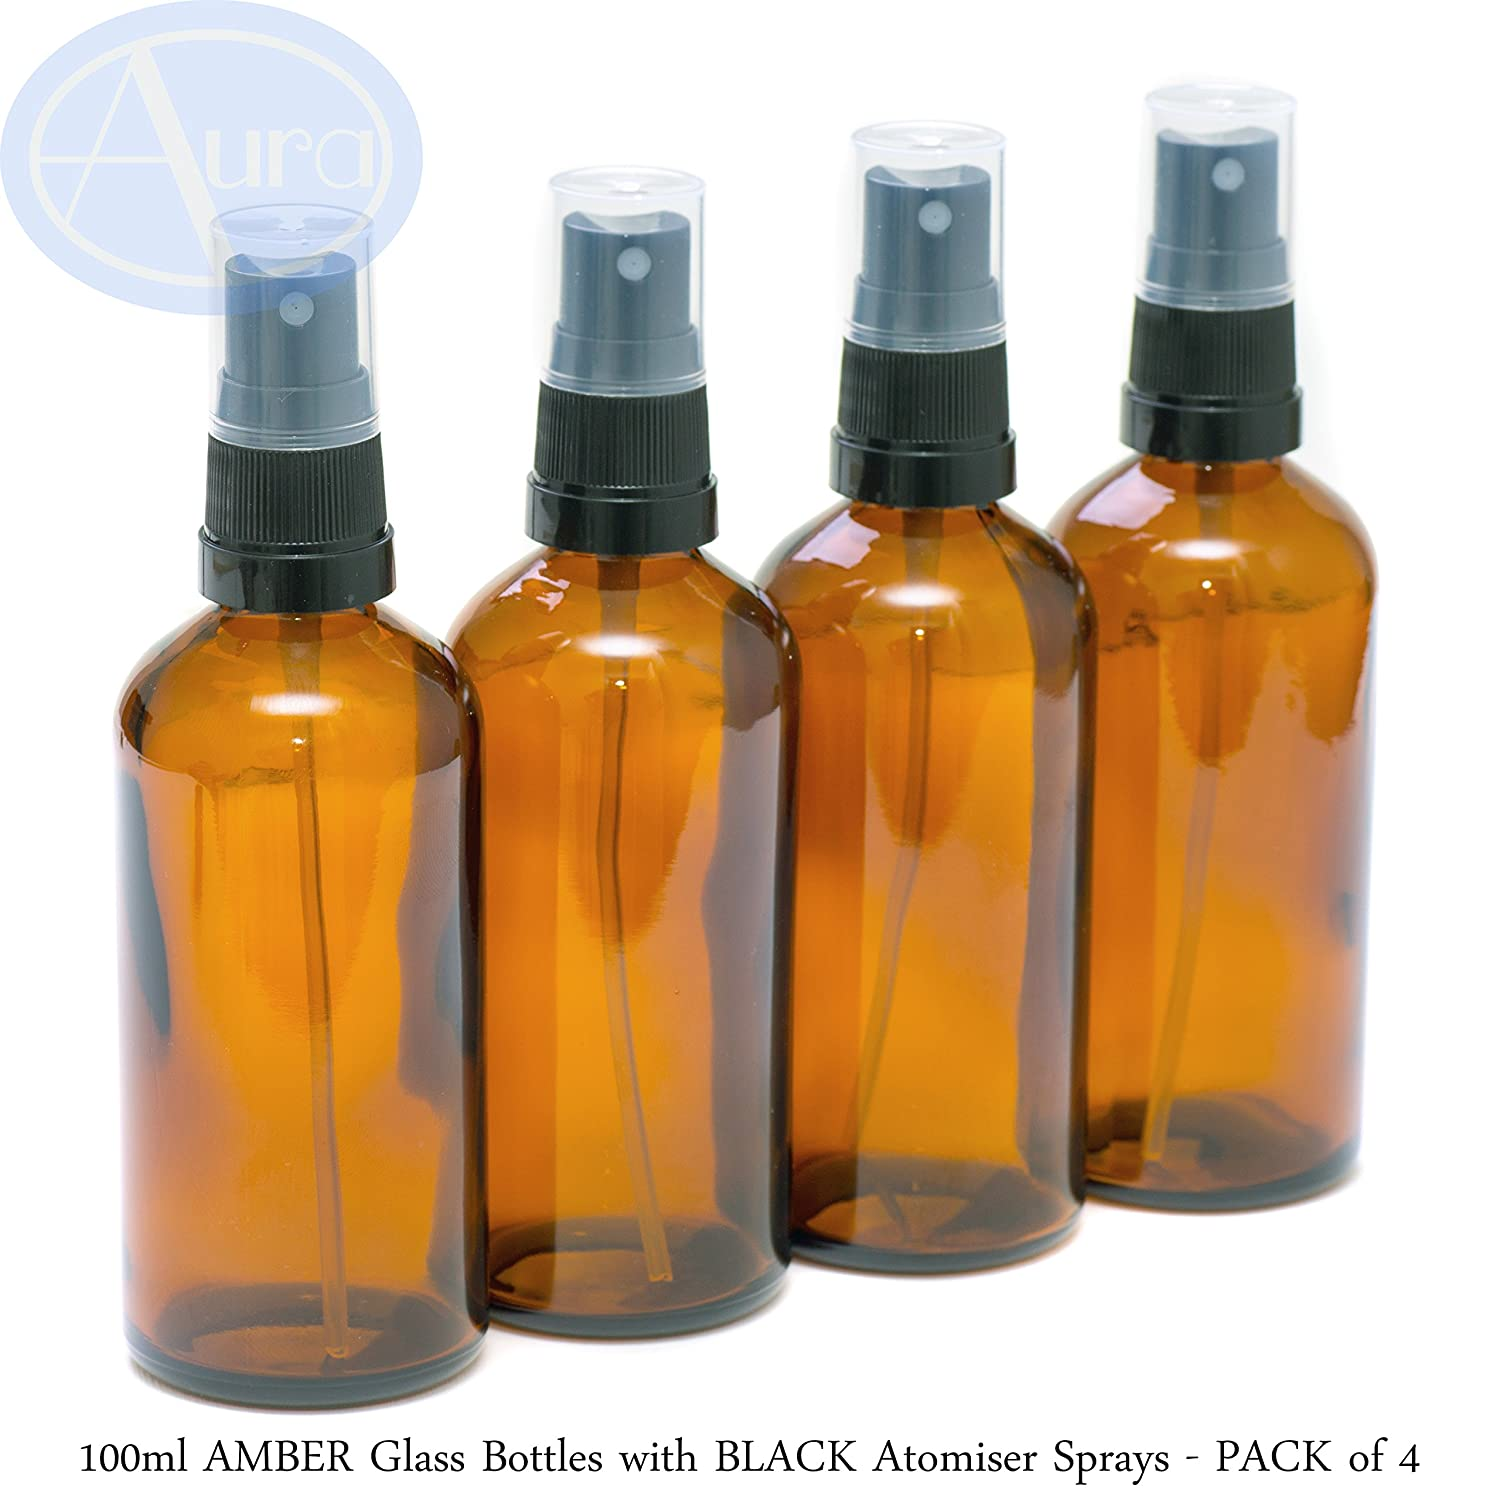 PACK of 4 - 100ml AMBER GLASS Bottles with Black ATOMISER Sprays. Essential Oil / Aromatherapy Use Aura Essential Oils Y100A4